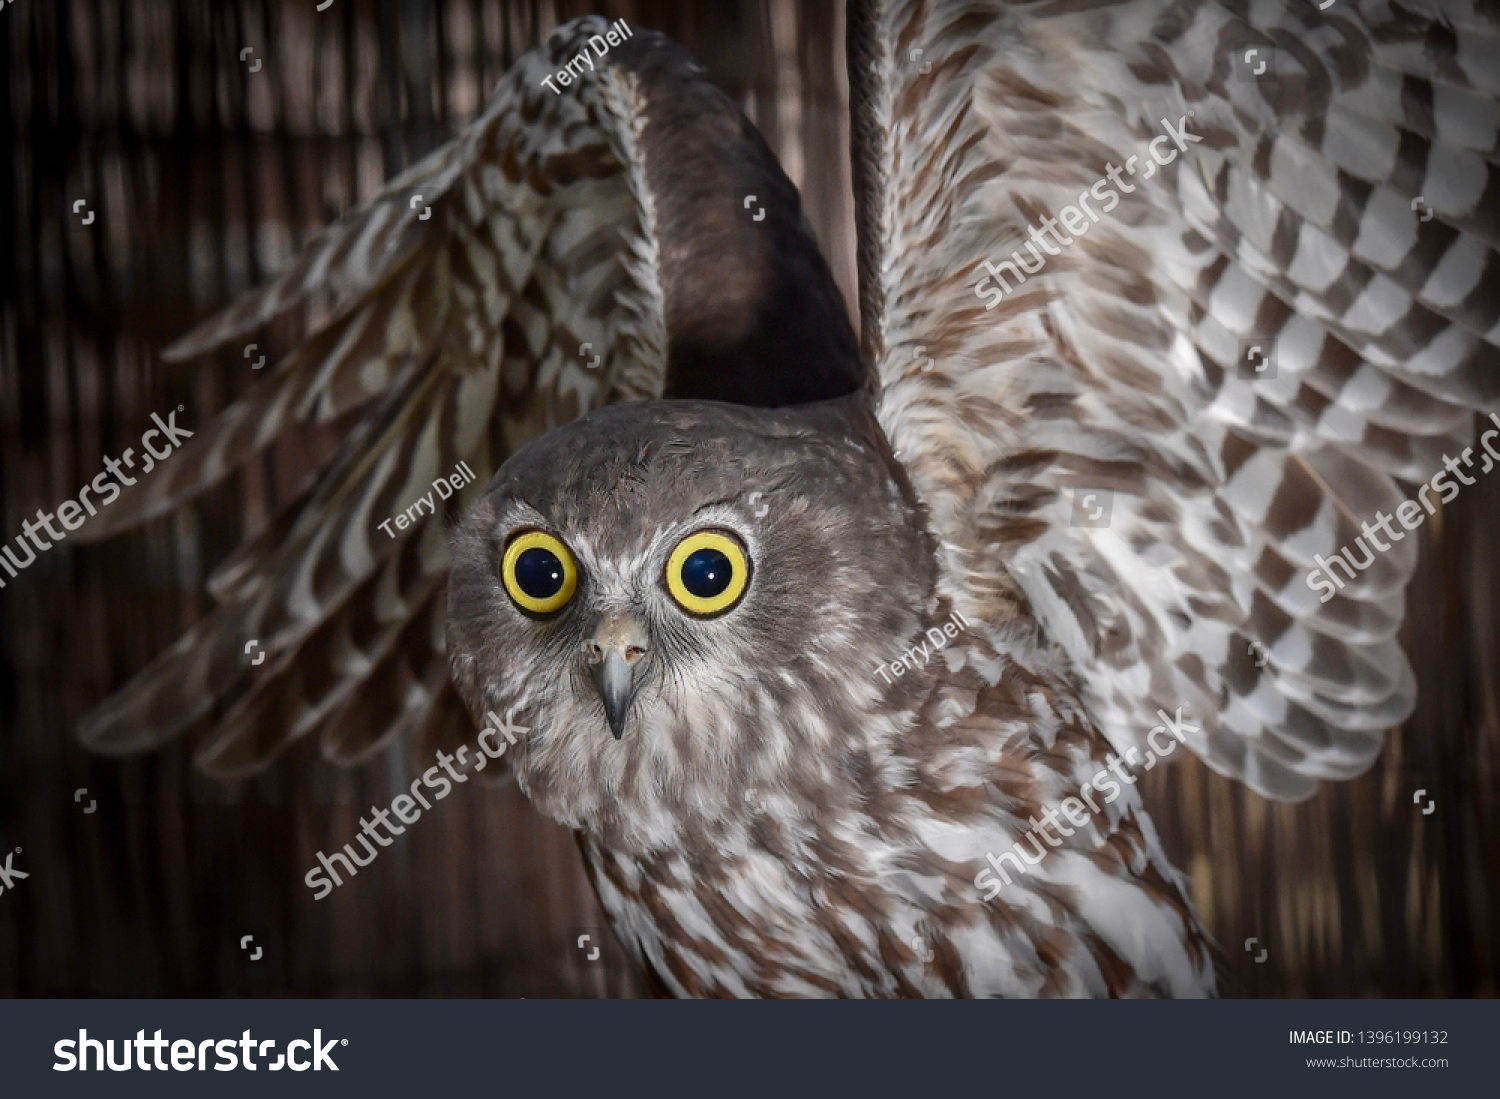 Barking Owl, Owl, Talons, Nocturnal, Birds, Bird, Feathers, Feather, Predator, Predators, Flight, Wings, Eyes, Closeups, #1396199132